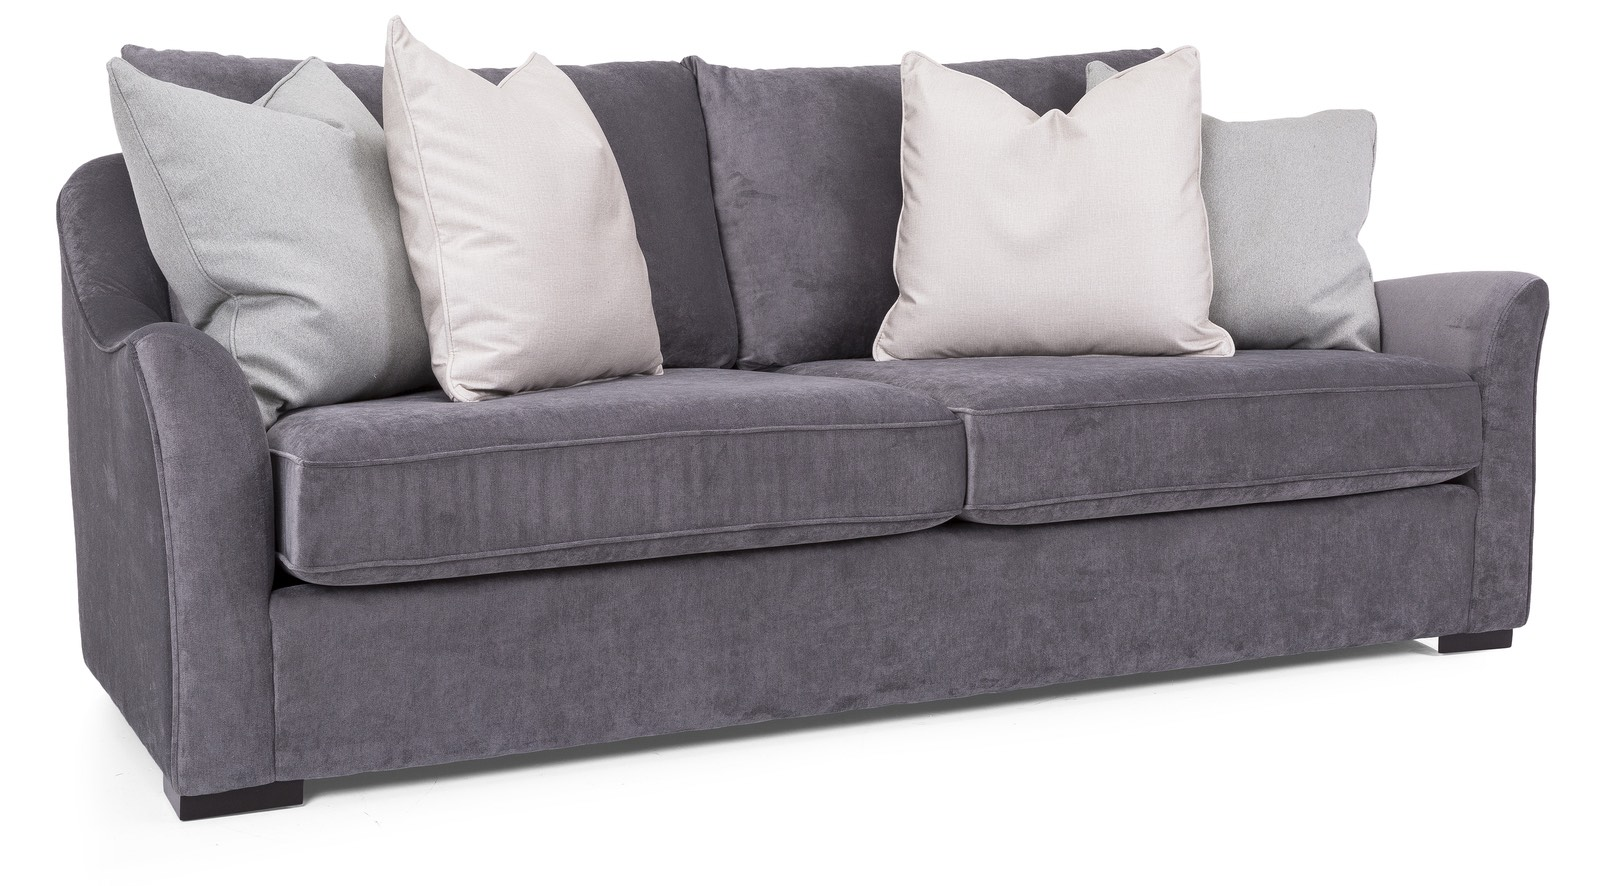 2 seat grey sofa with grey and white pillows